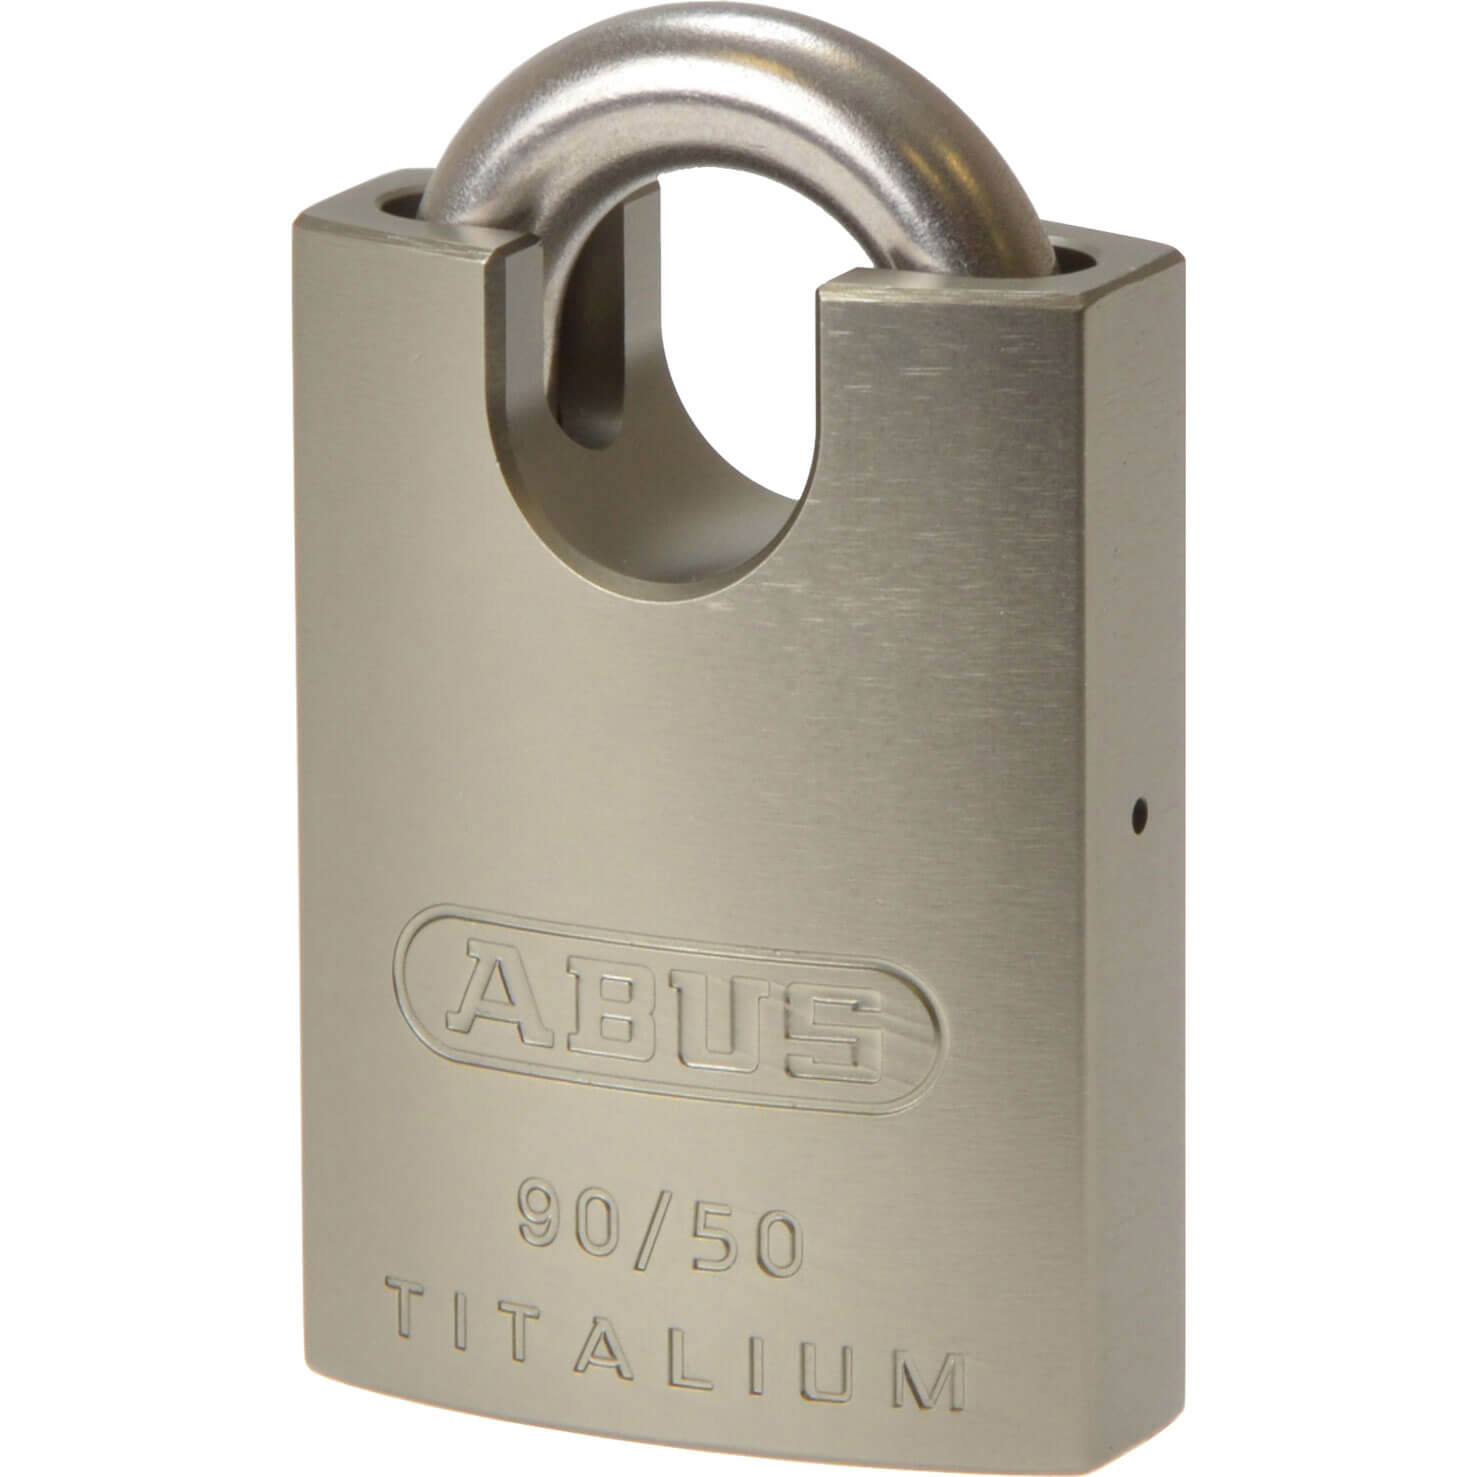 Image of Abus 90 Series Titalium Padlock Stainless Steel Closed Shackle 50mm Closed